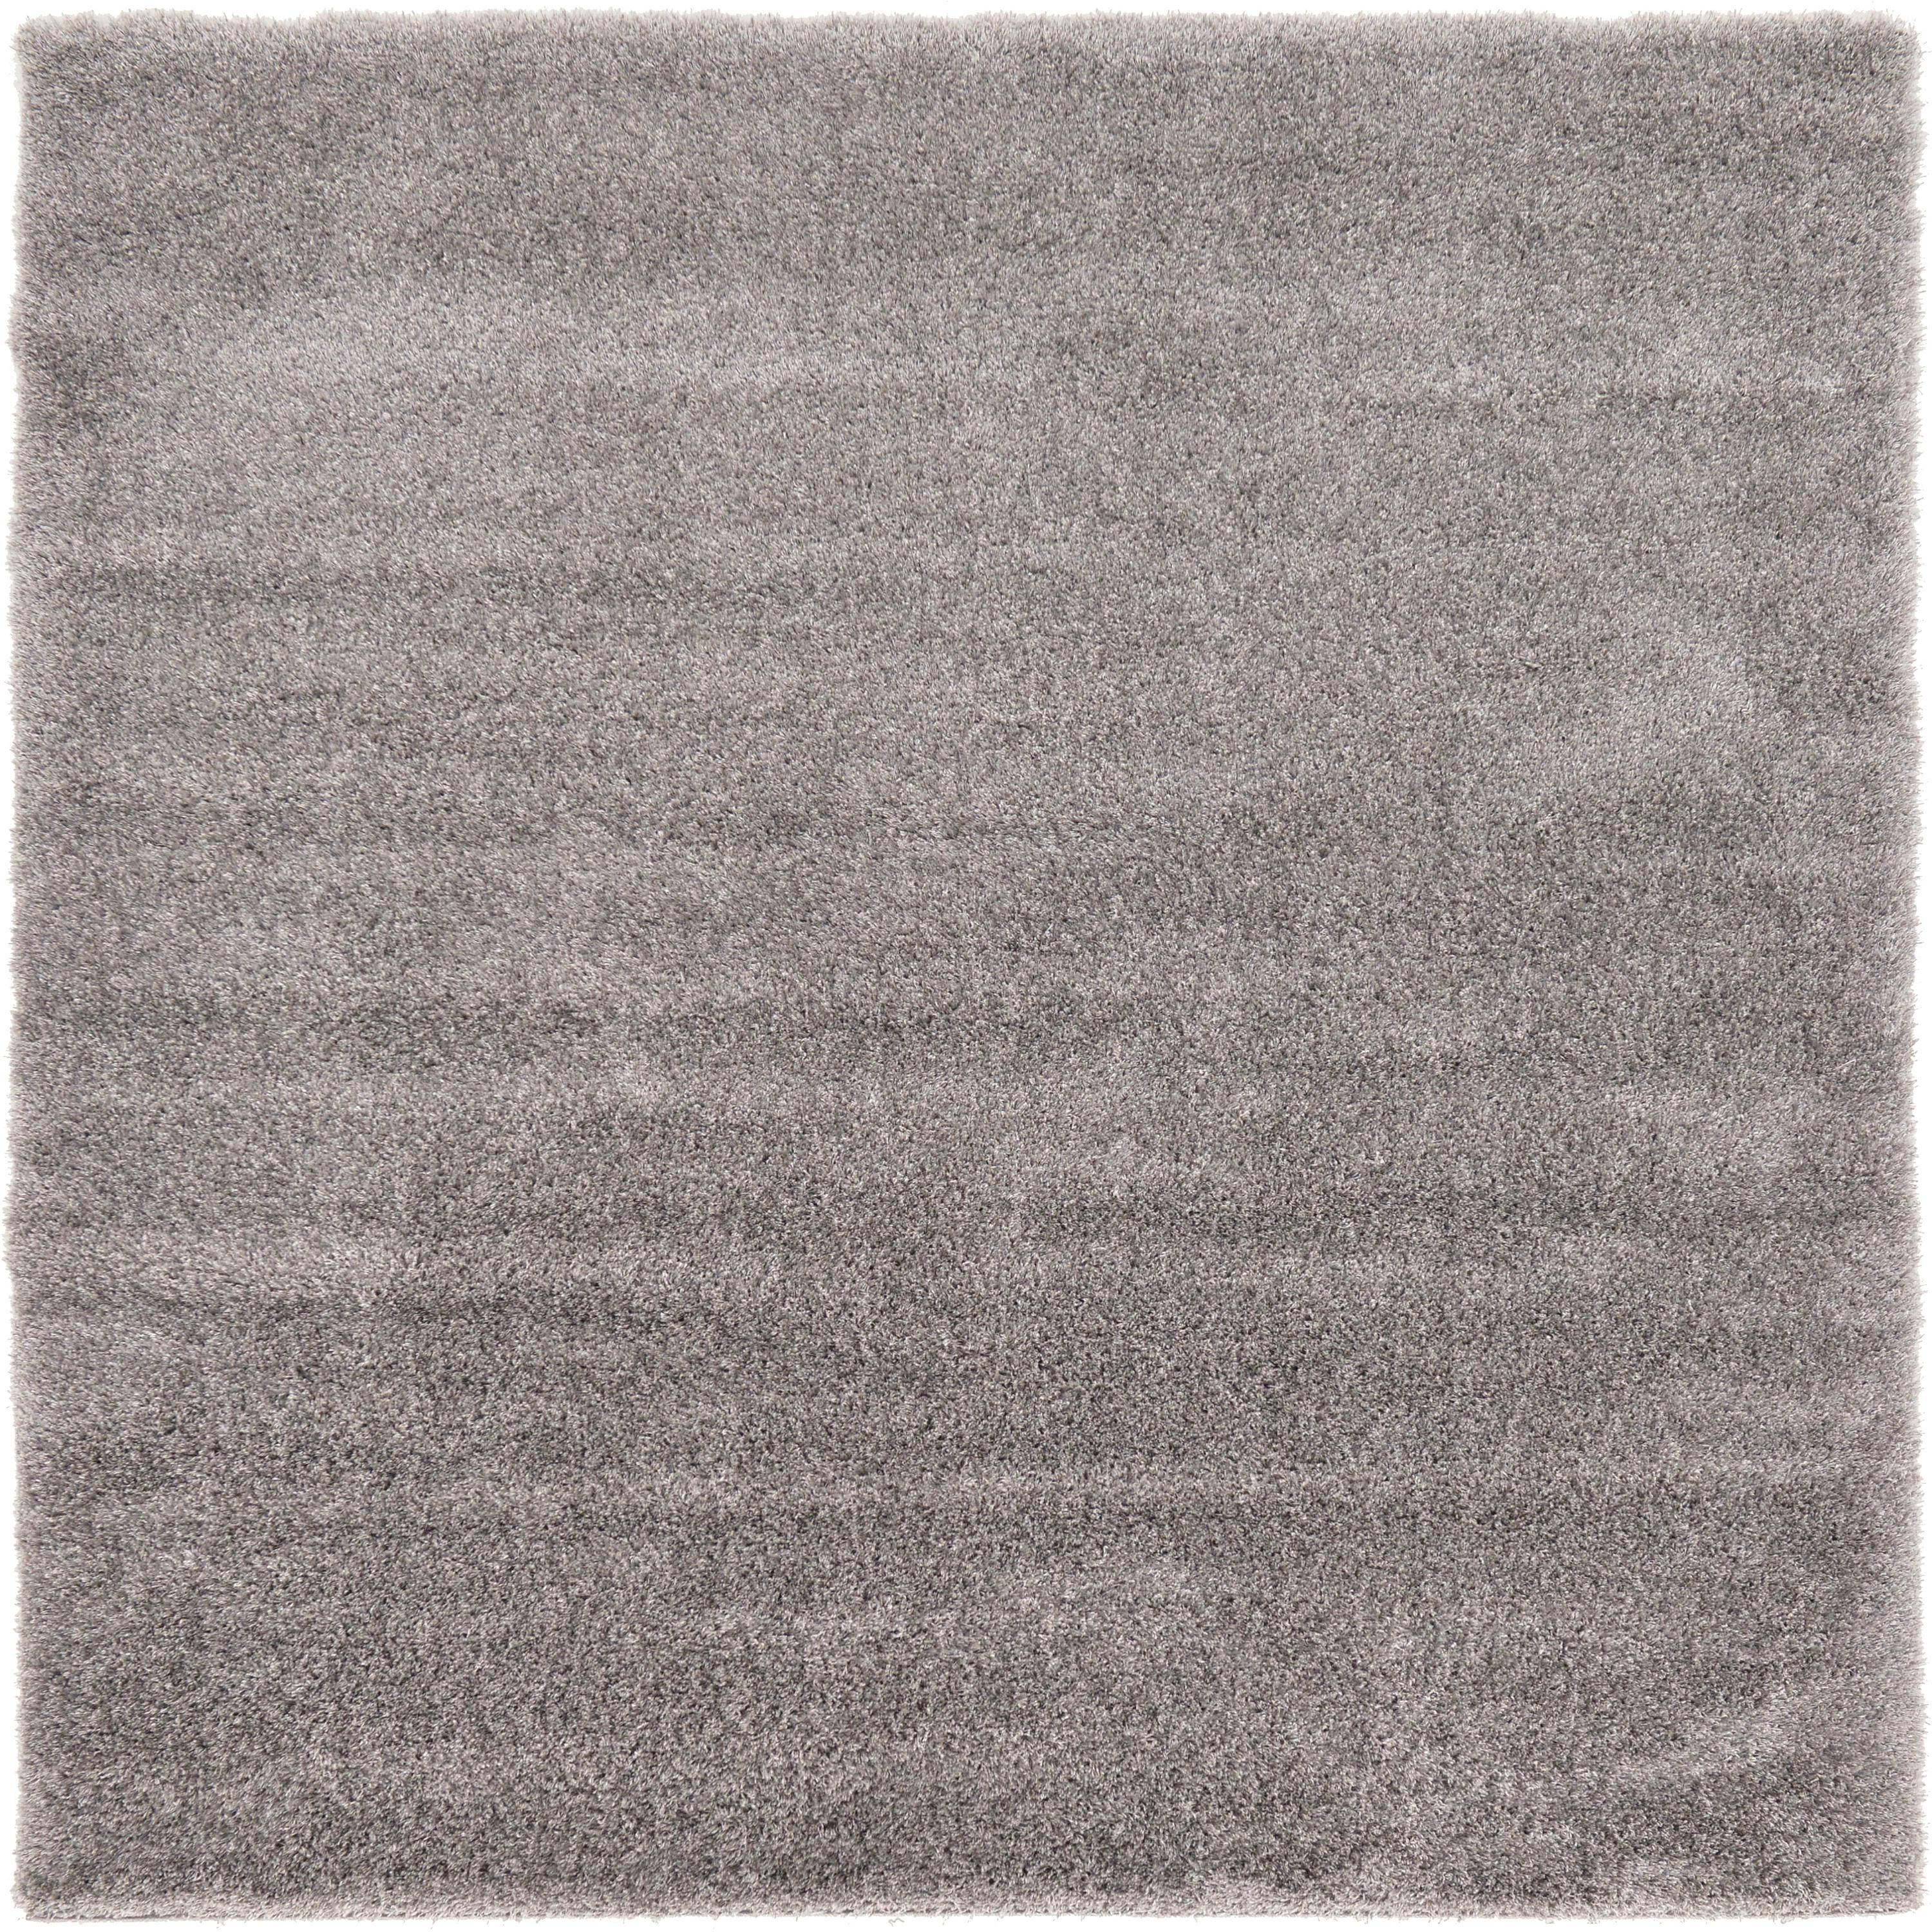 Gray 8 X 8 Luxe Solid Shag Square Rug Area Rugs Esalerugs Square Rugs Area Rugs Rugs